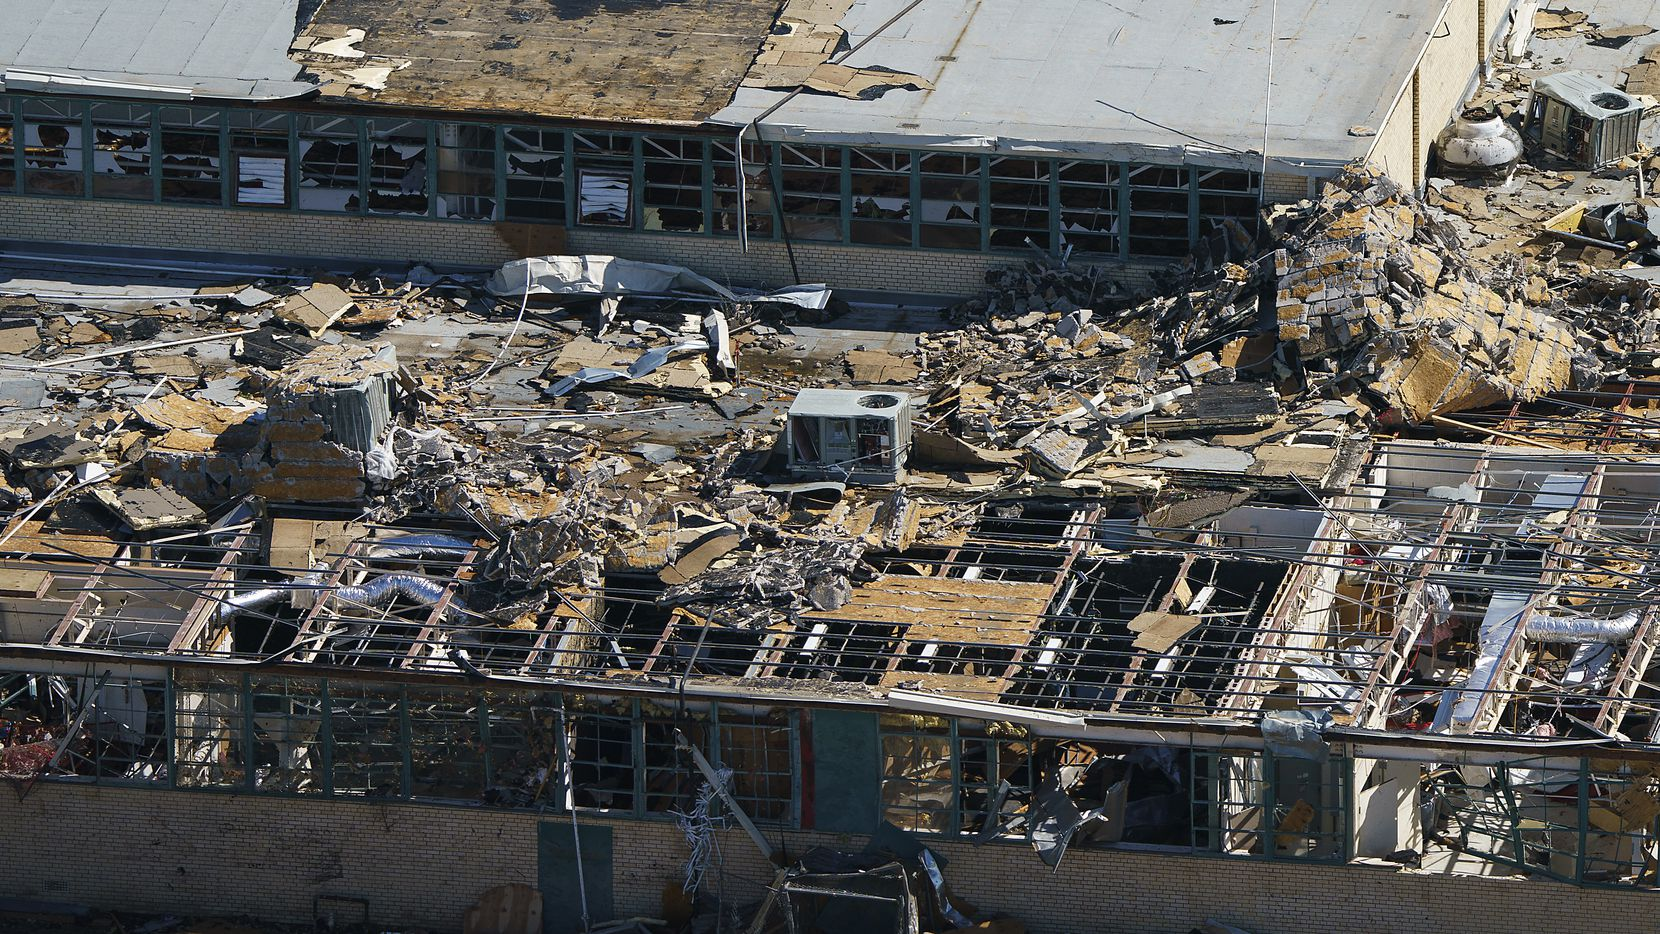 Tornado damage is seen an aerial view of Thomas Jefferson High School on Oct. 21, 2019, in Dallas. (Smiley N. Pool/The Dallas Morning News)